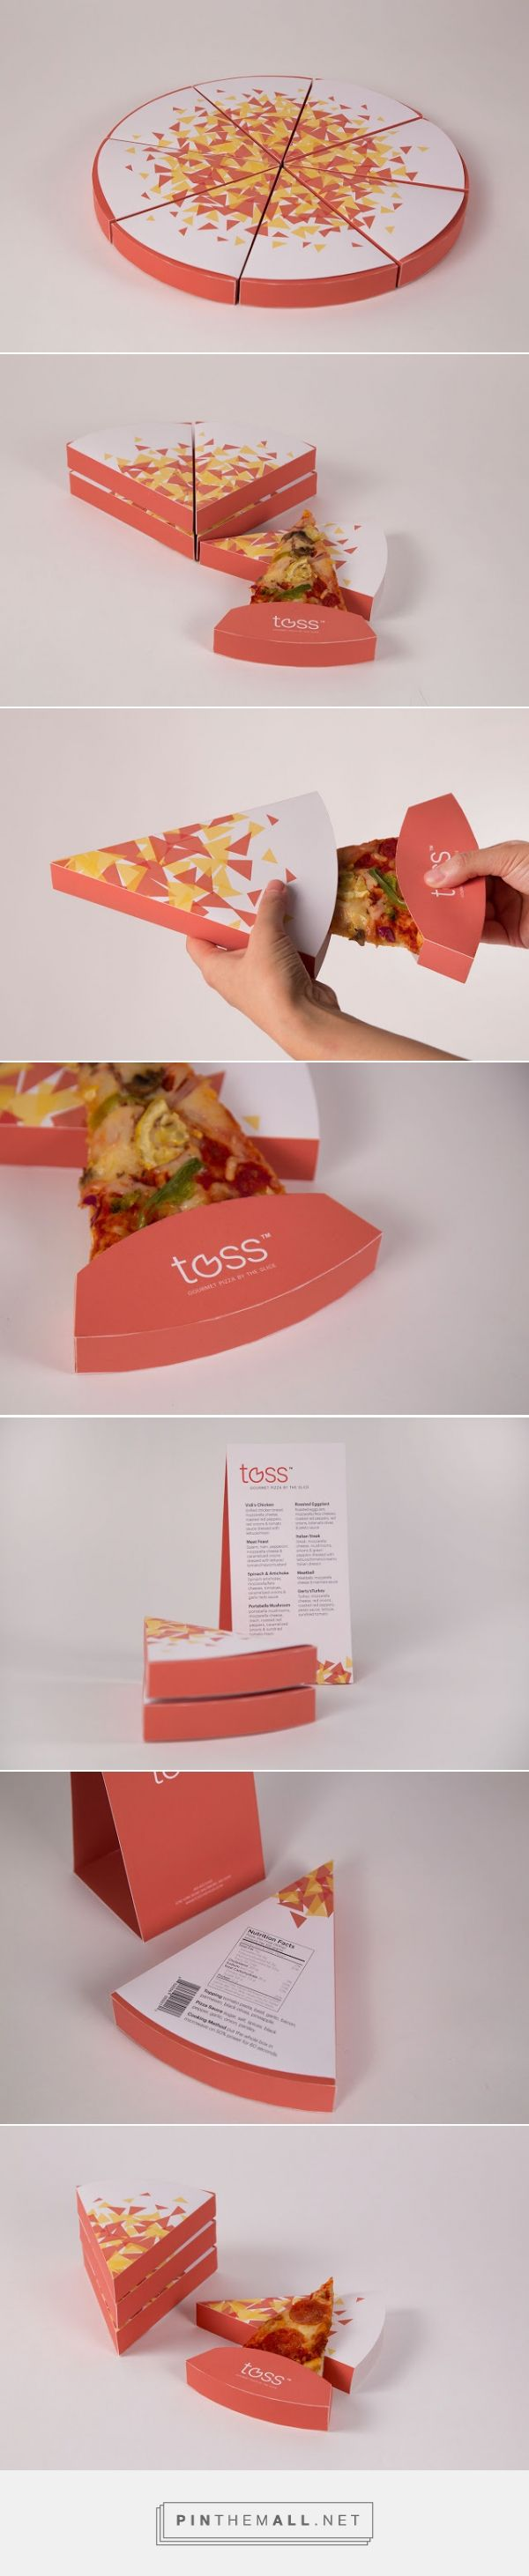 Toss - Gourmet Pizza By The Slice (Student Project)